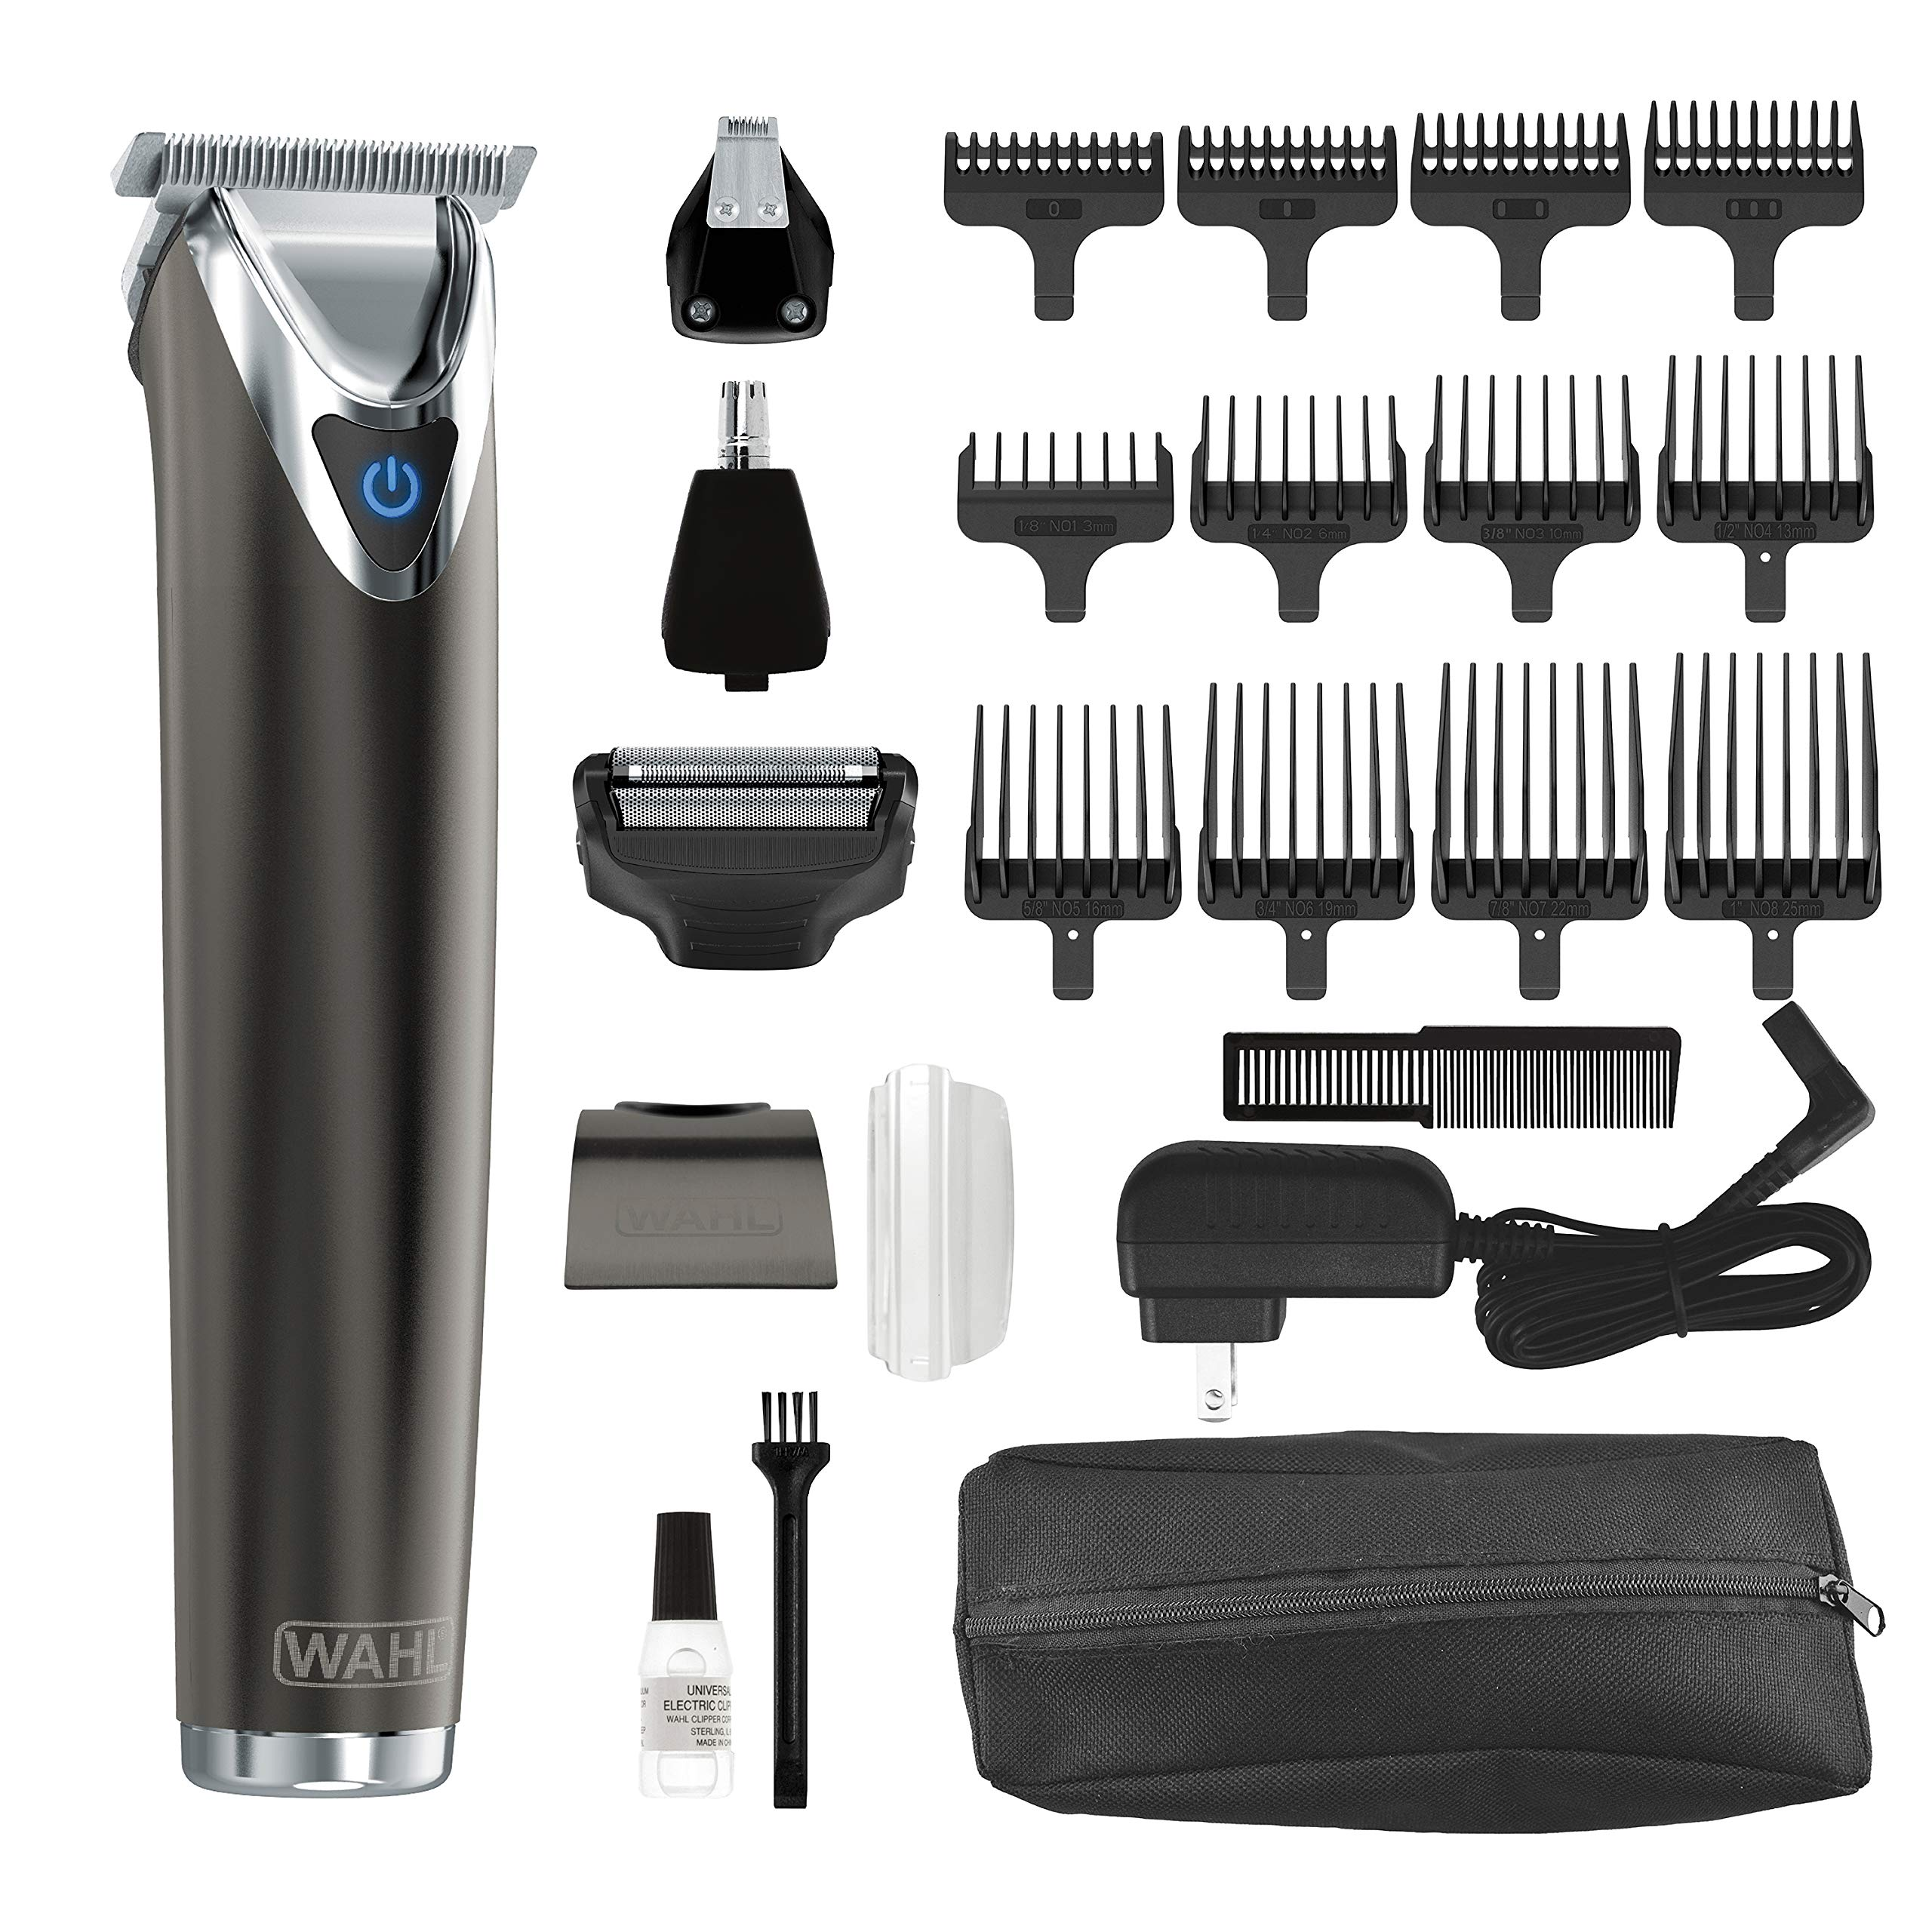 Wahl Stainless Steel Lithium Ion 2.0+ Slate Beard Trimmer for Men - Electric Shaver, Nose Ear Trimmer, Rechargeable All in One Men's Grooming Kit - Model 9864 by WAHL